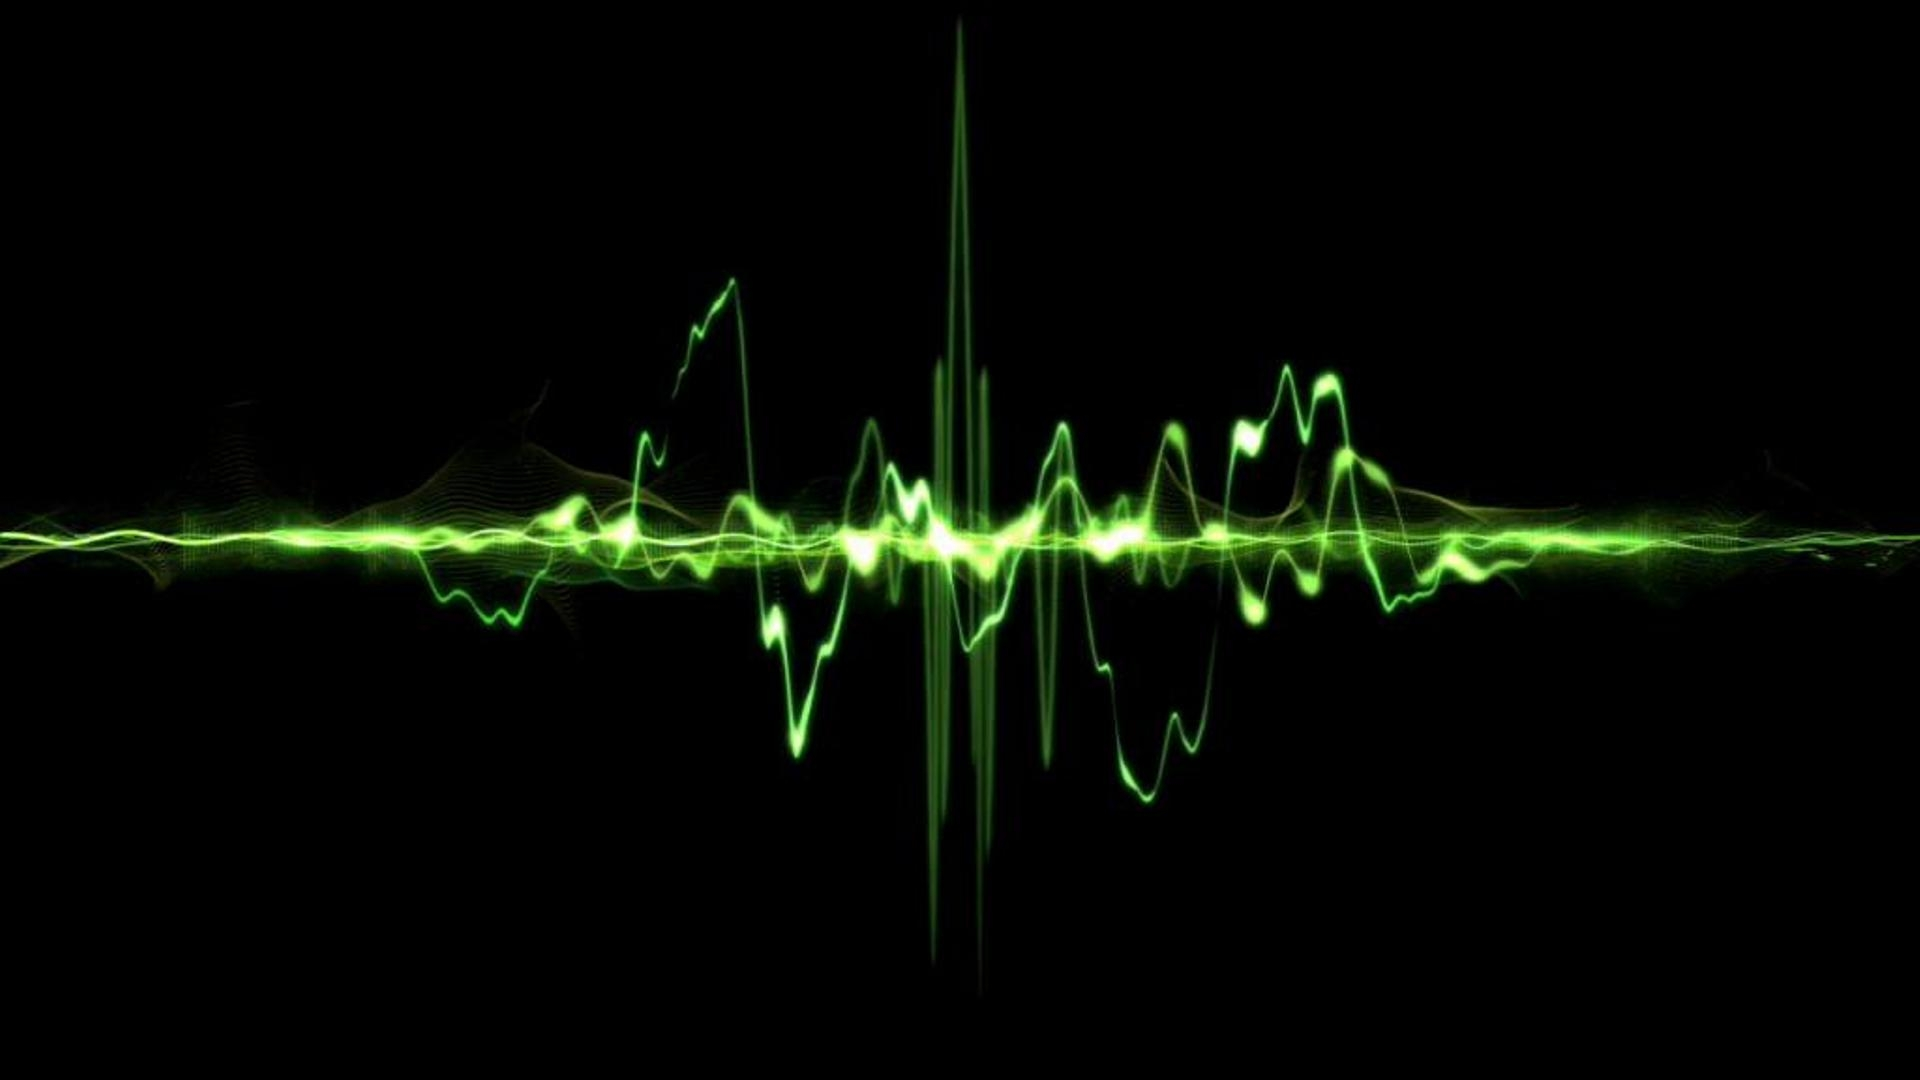 green-frequency-wavy-lines-26422.jpg